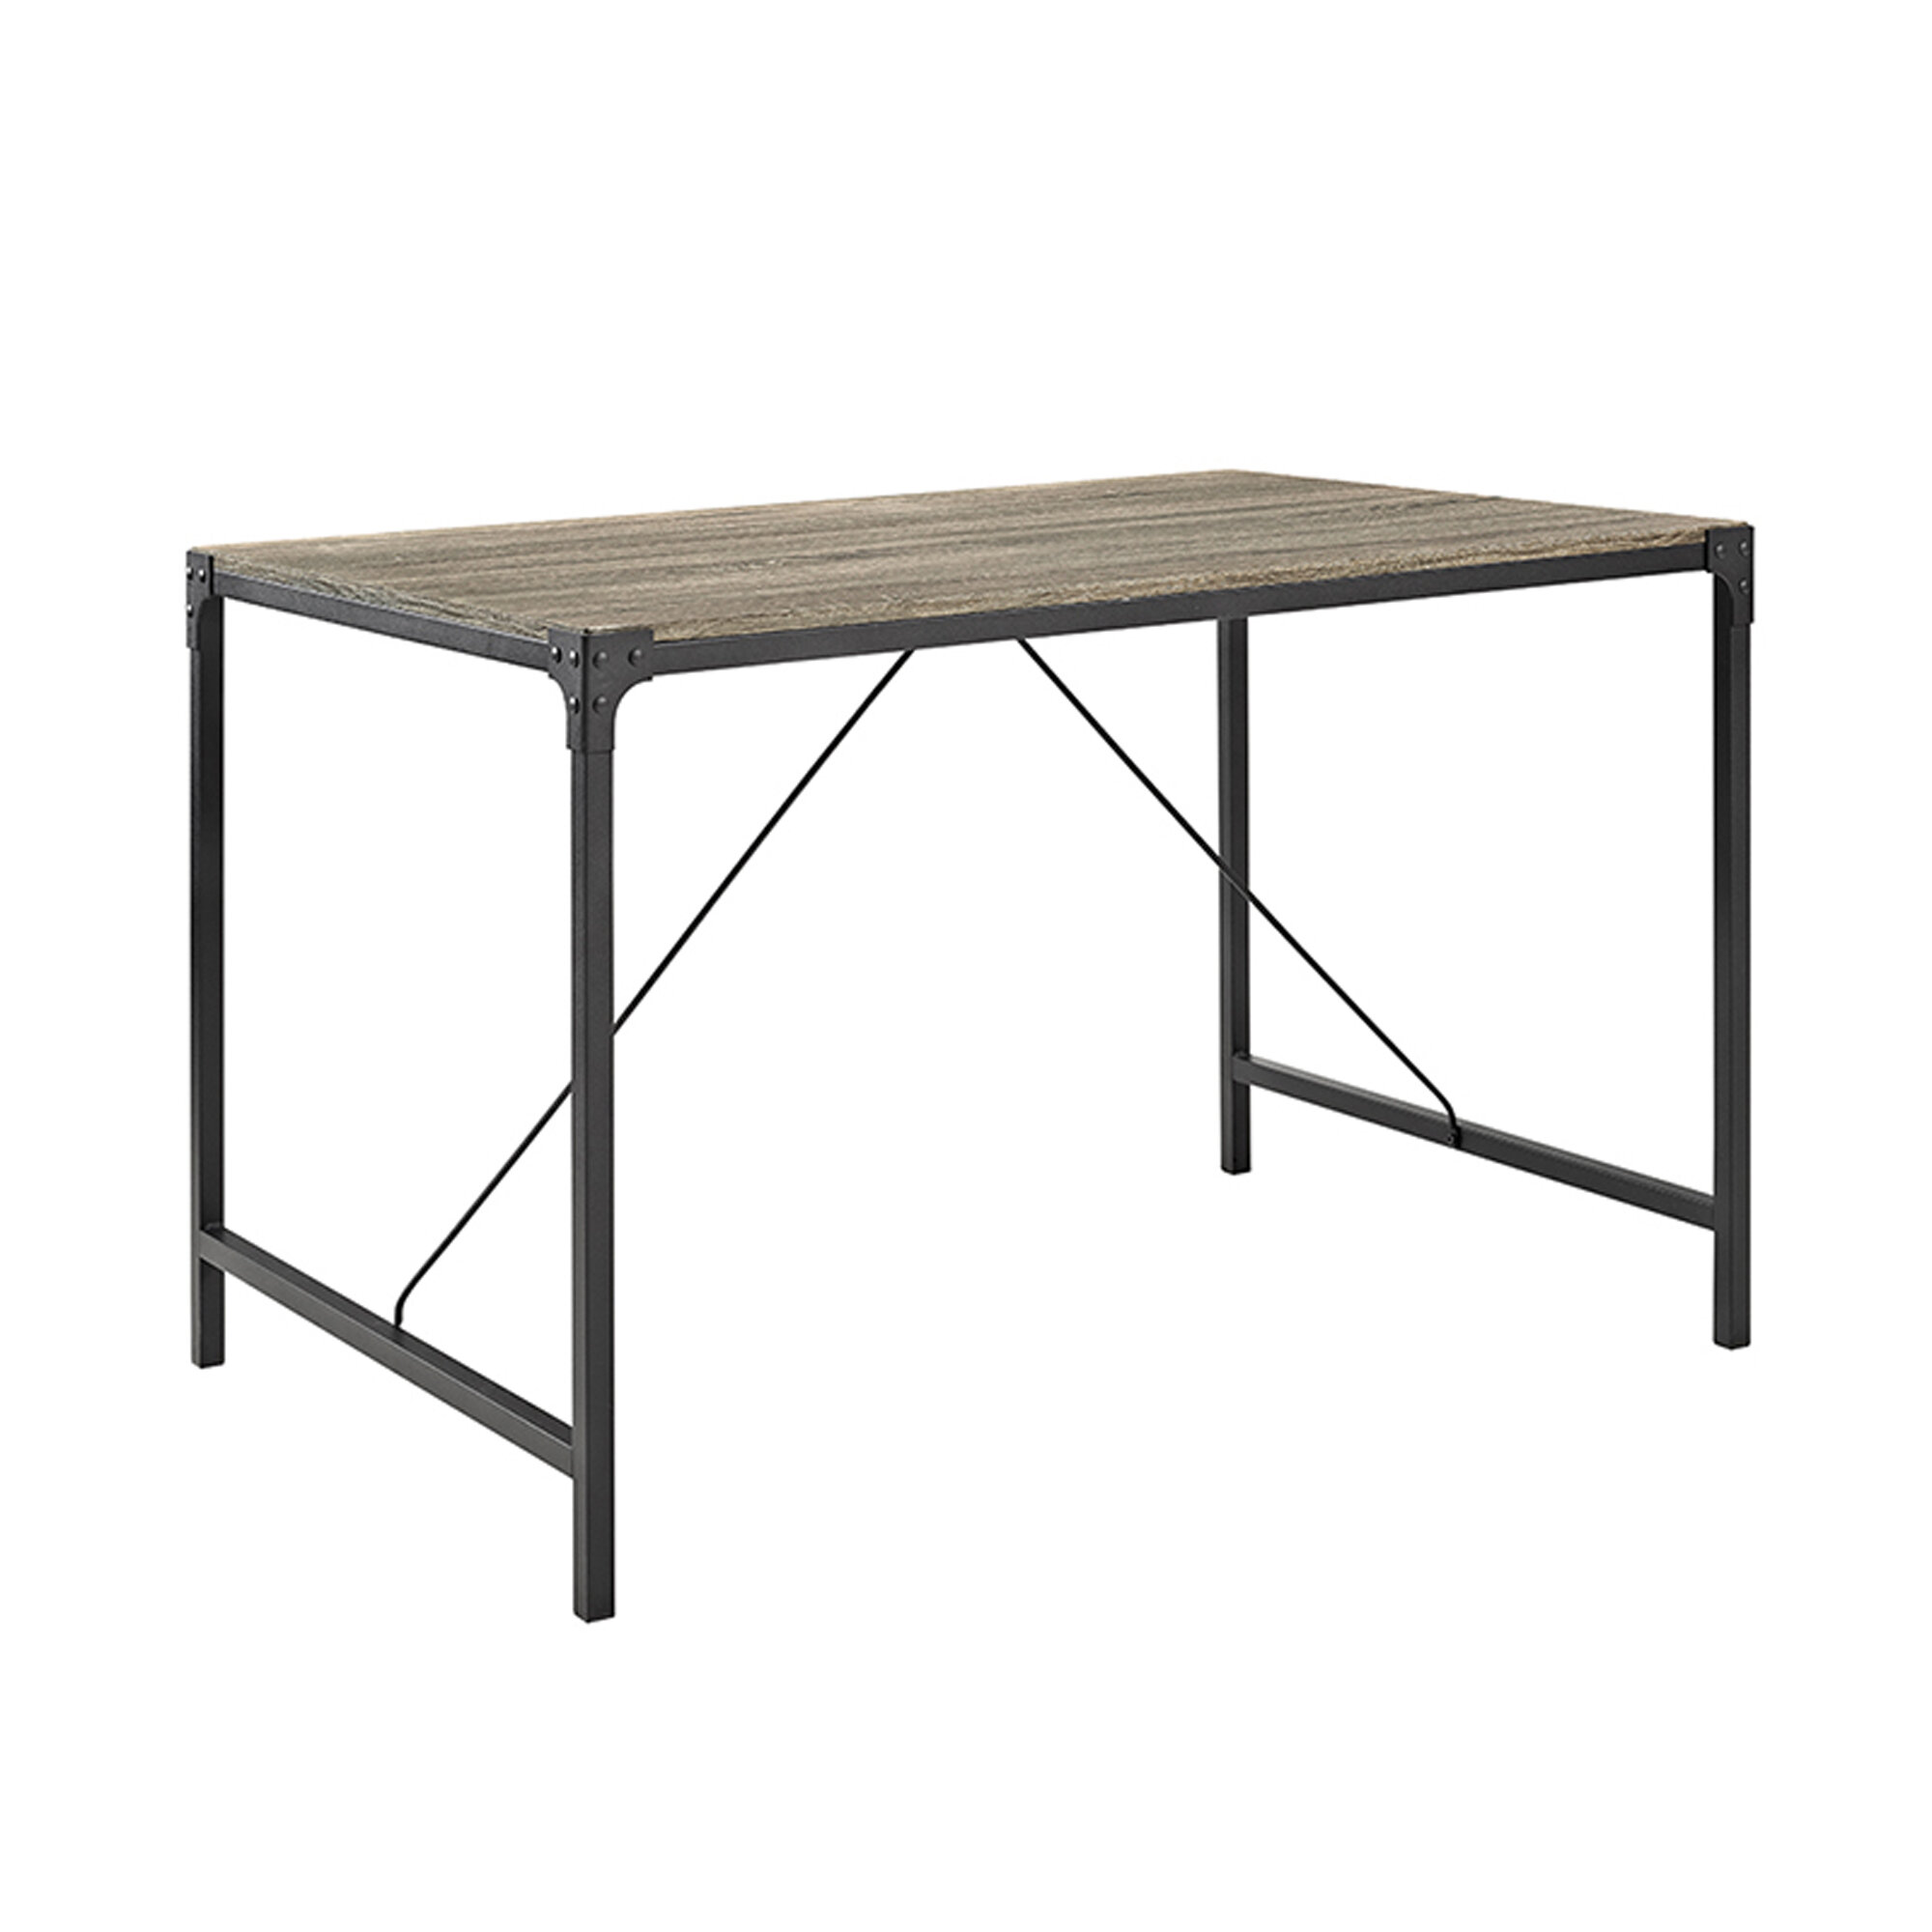 Laurel Foundry Madeline Angle Iron And Wood Dining Table &